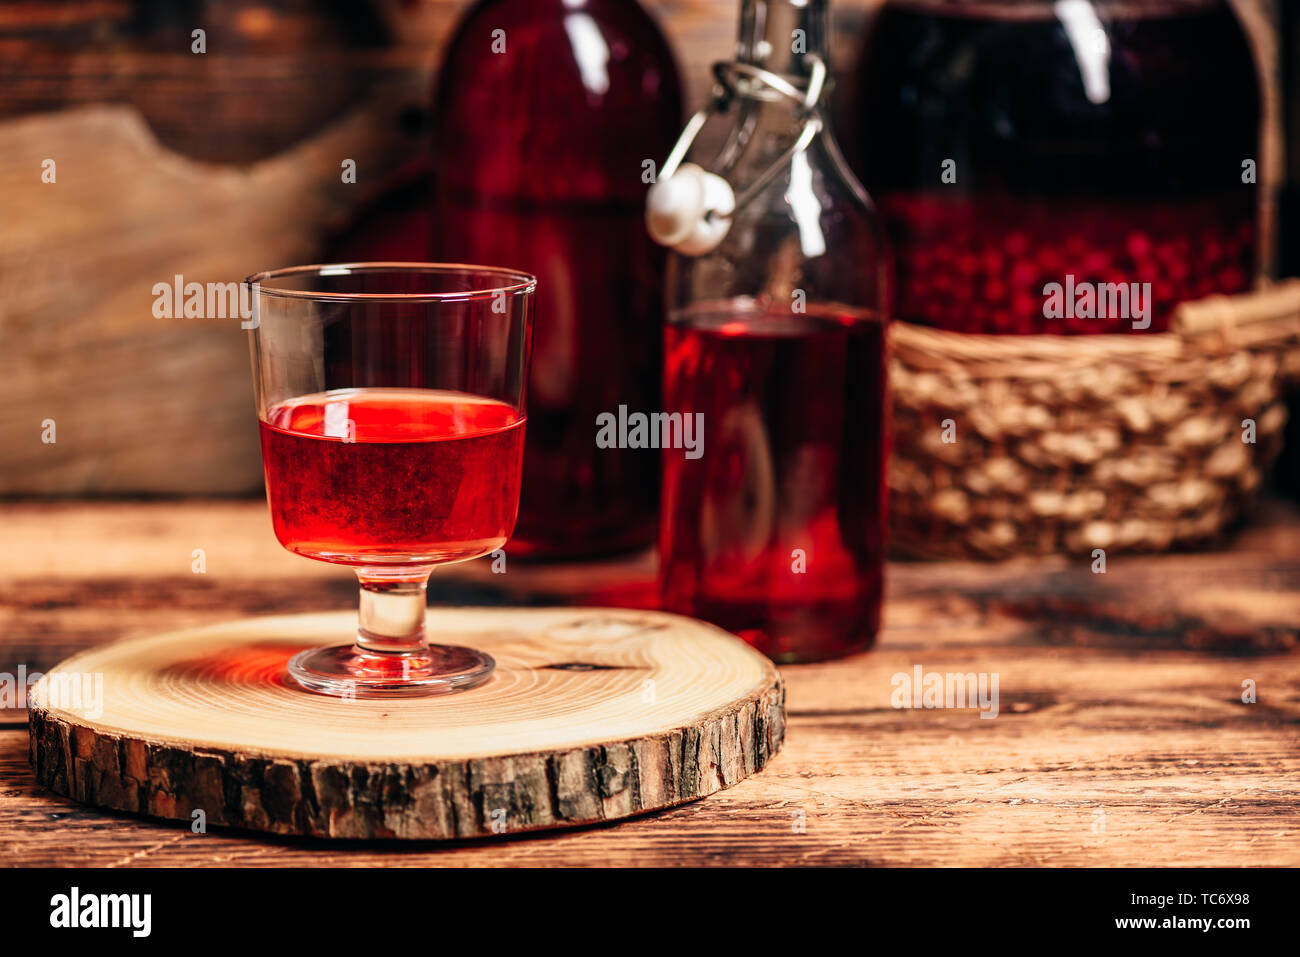 Homemade red currant liquor in wine glass - Stock Image